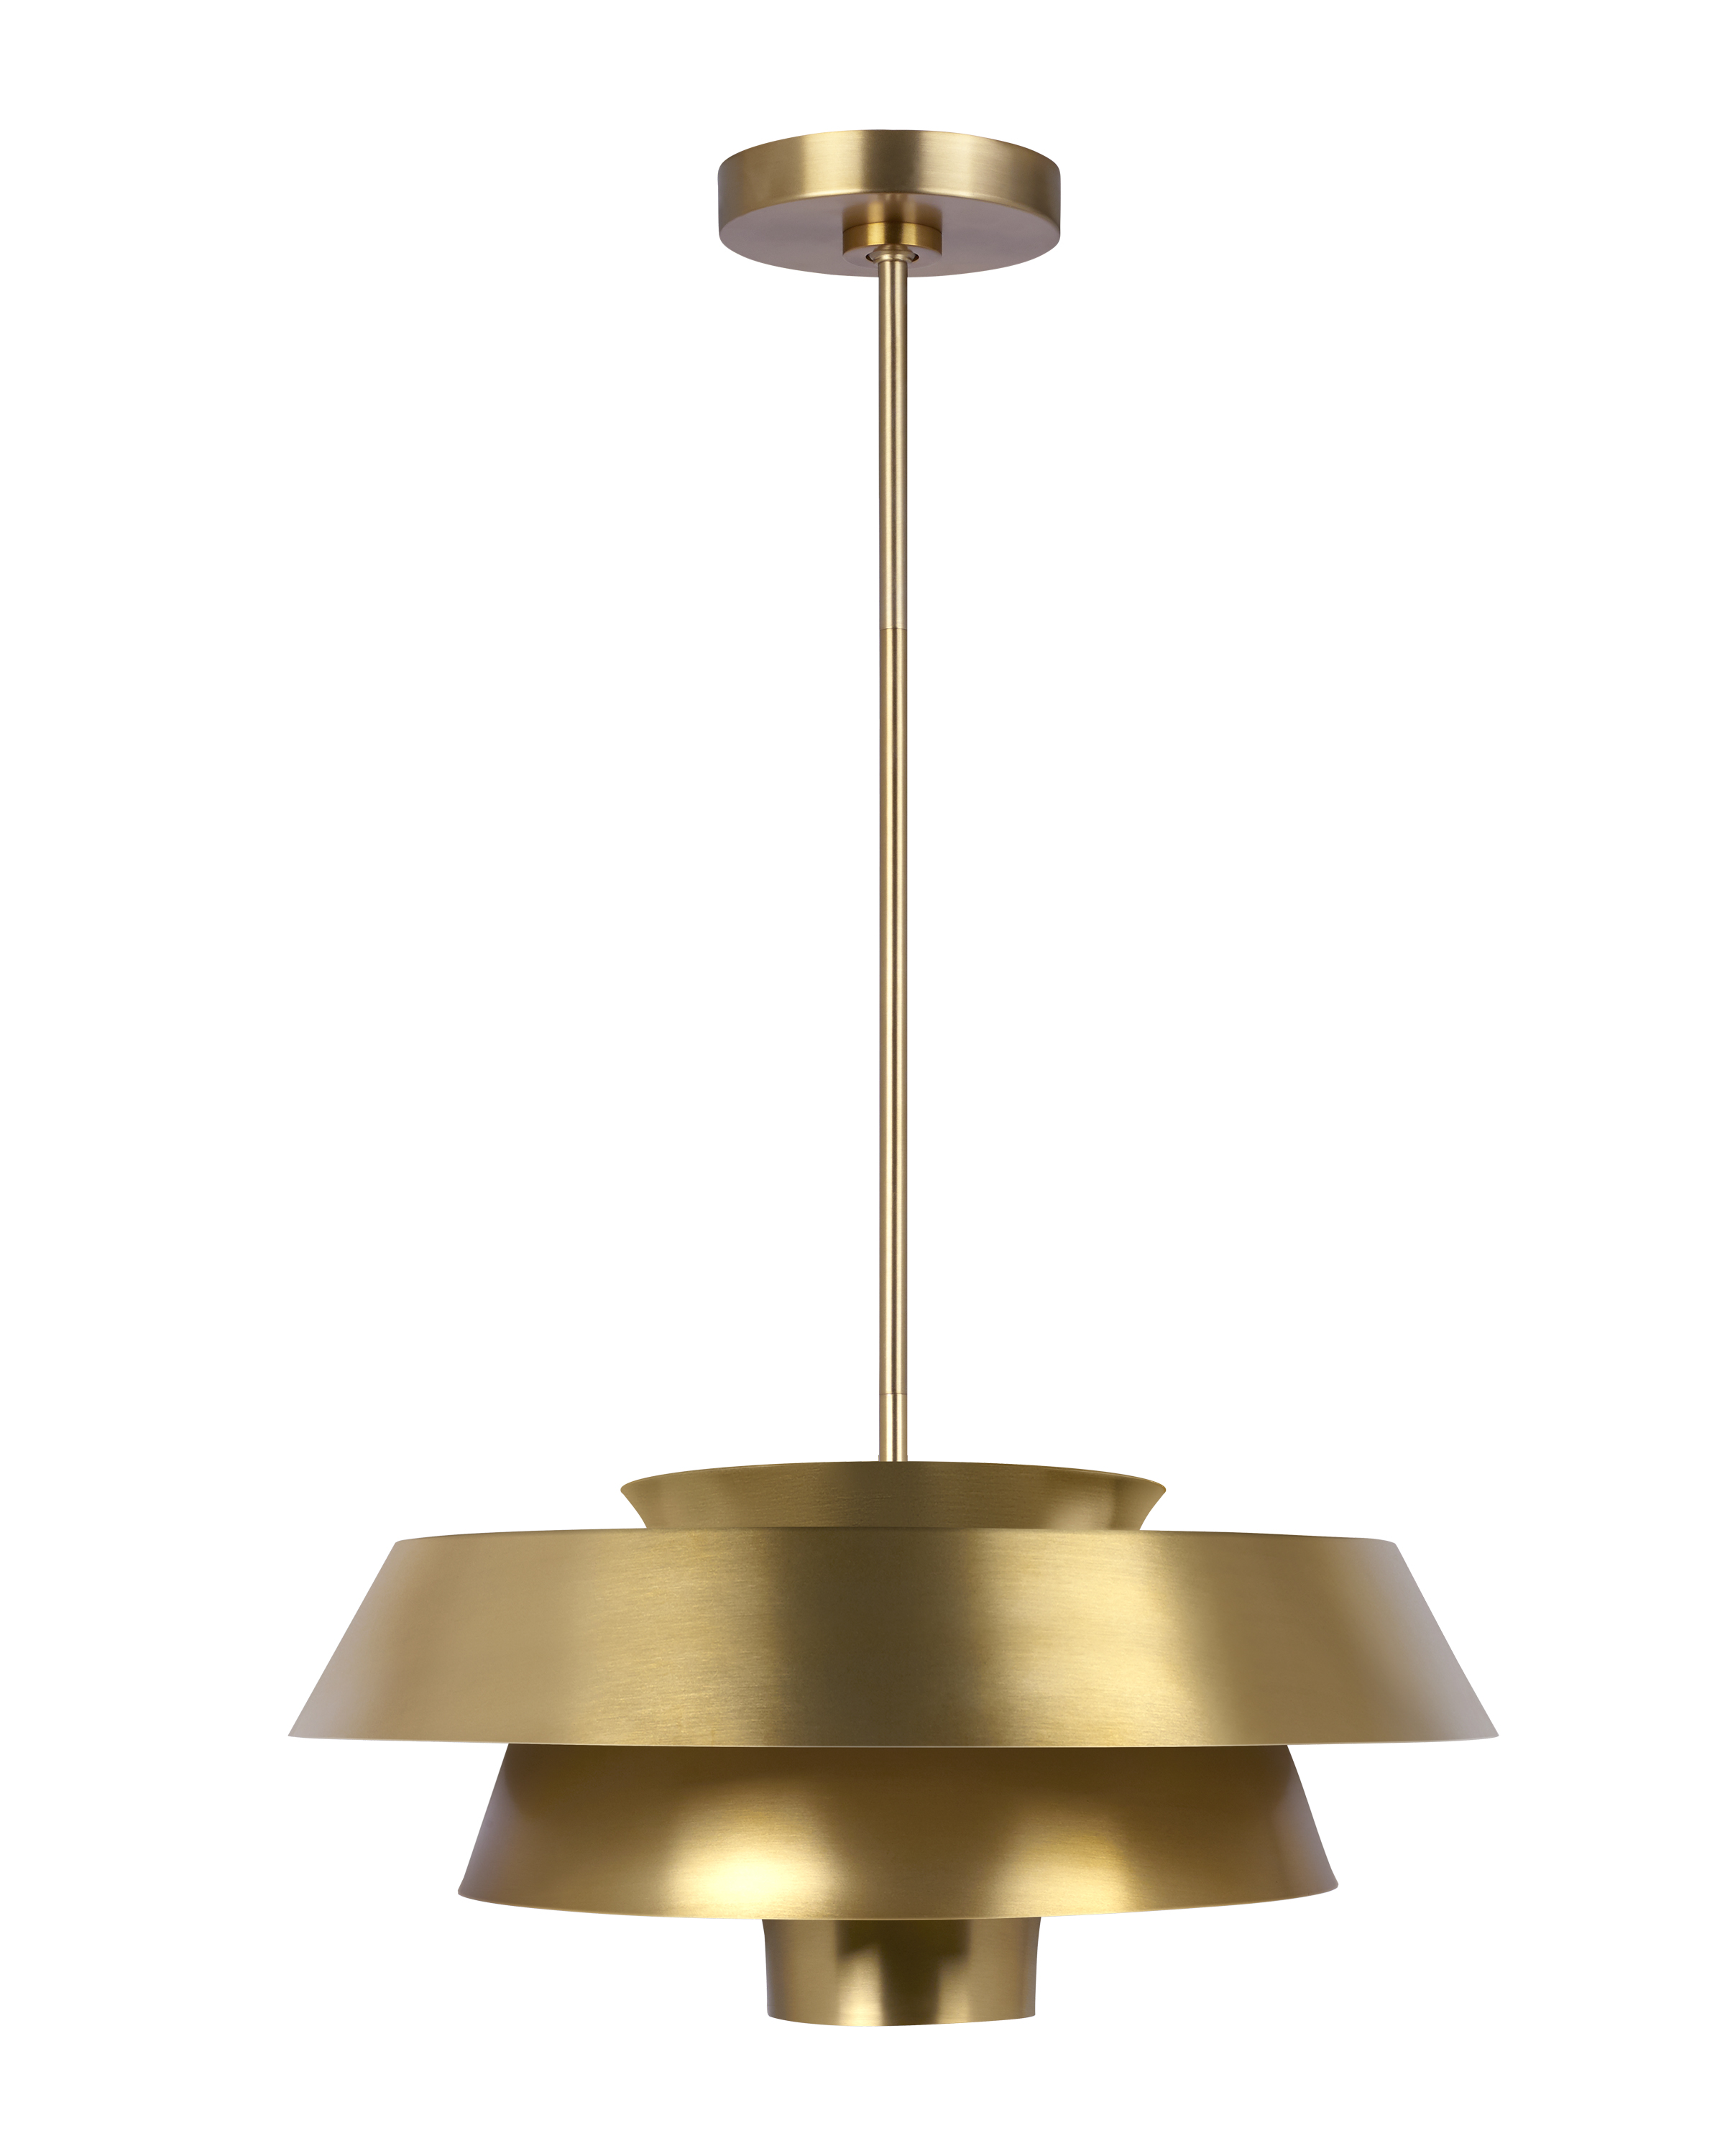 Generation Lighting ED Ellen Degeneres Brisbin pendant